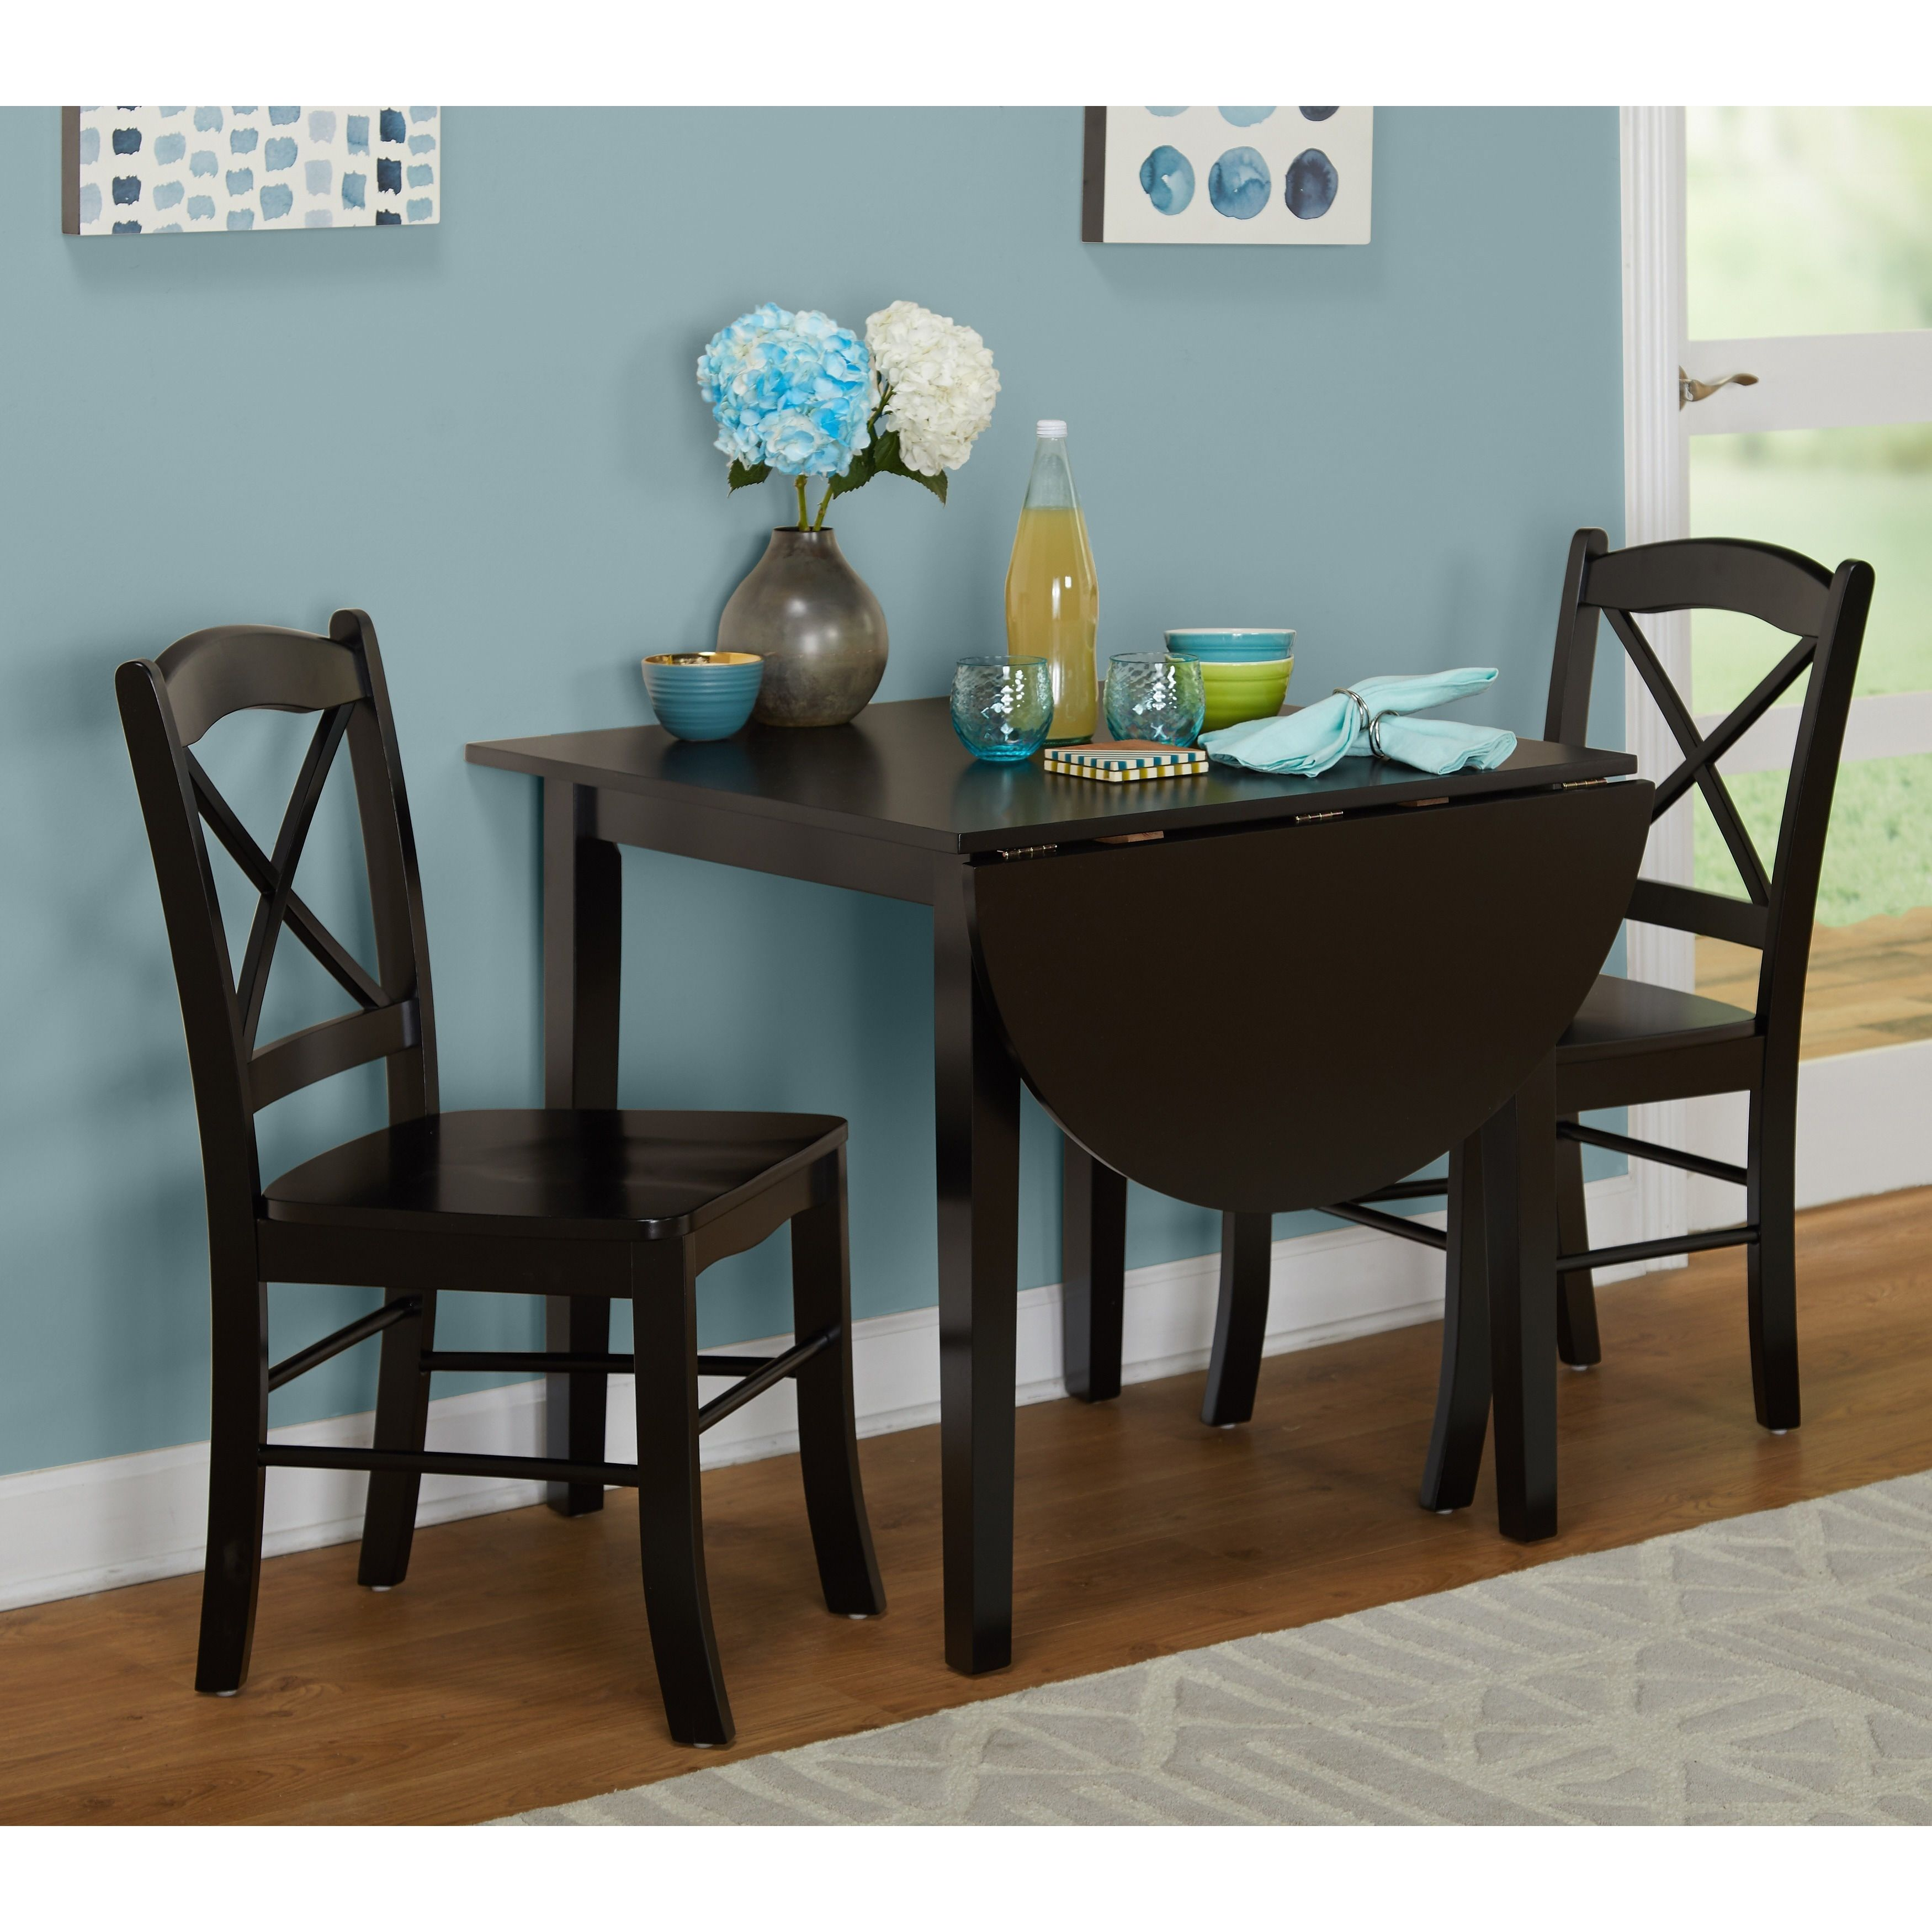 Simple Living Black 3 Piece Country Cottage Dining Set 3pc Size Sets